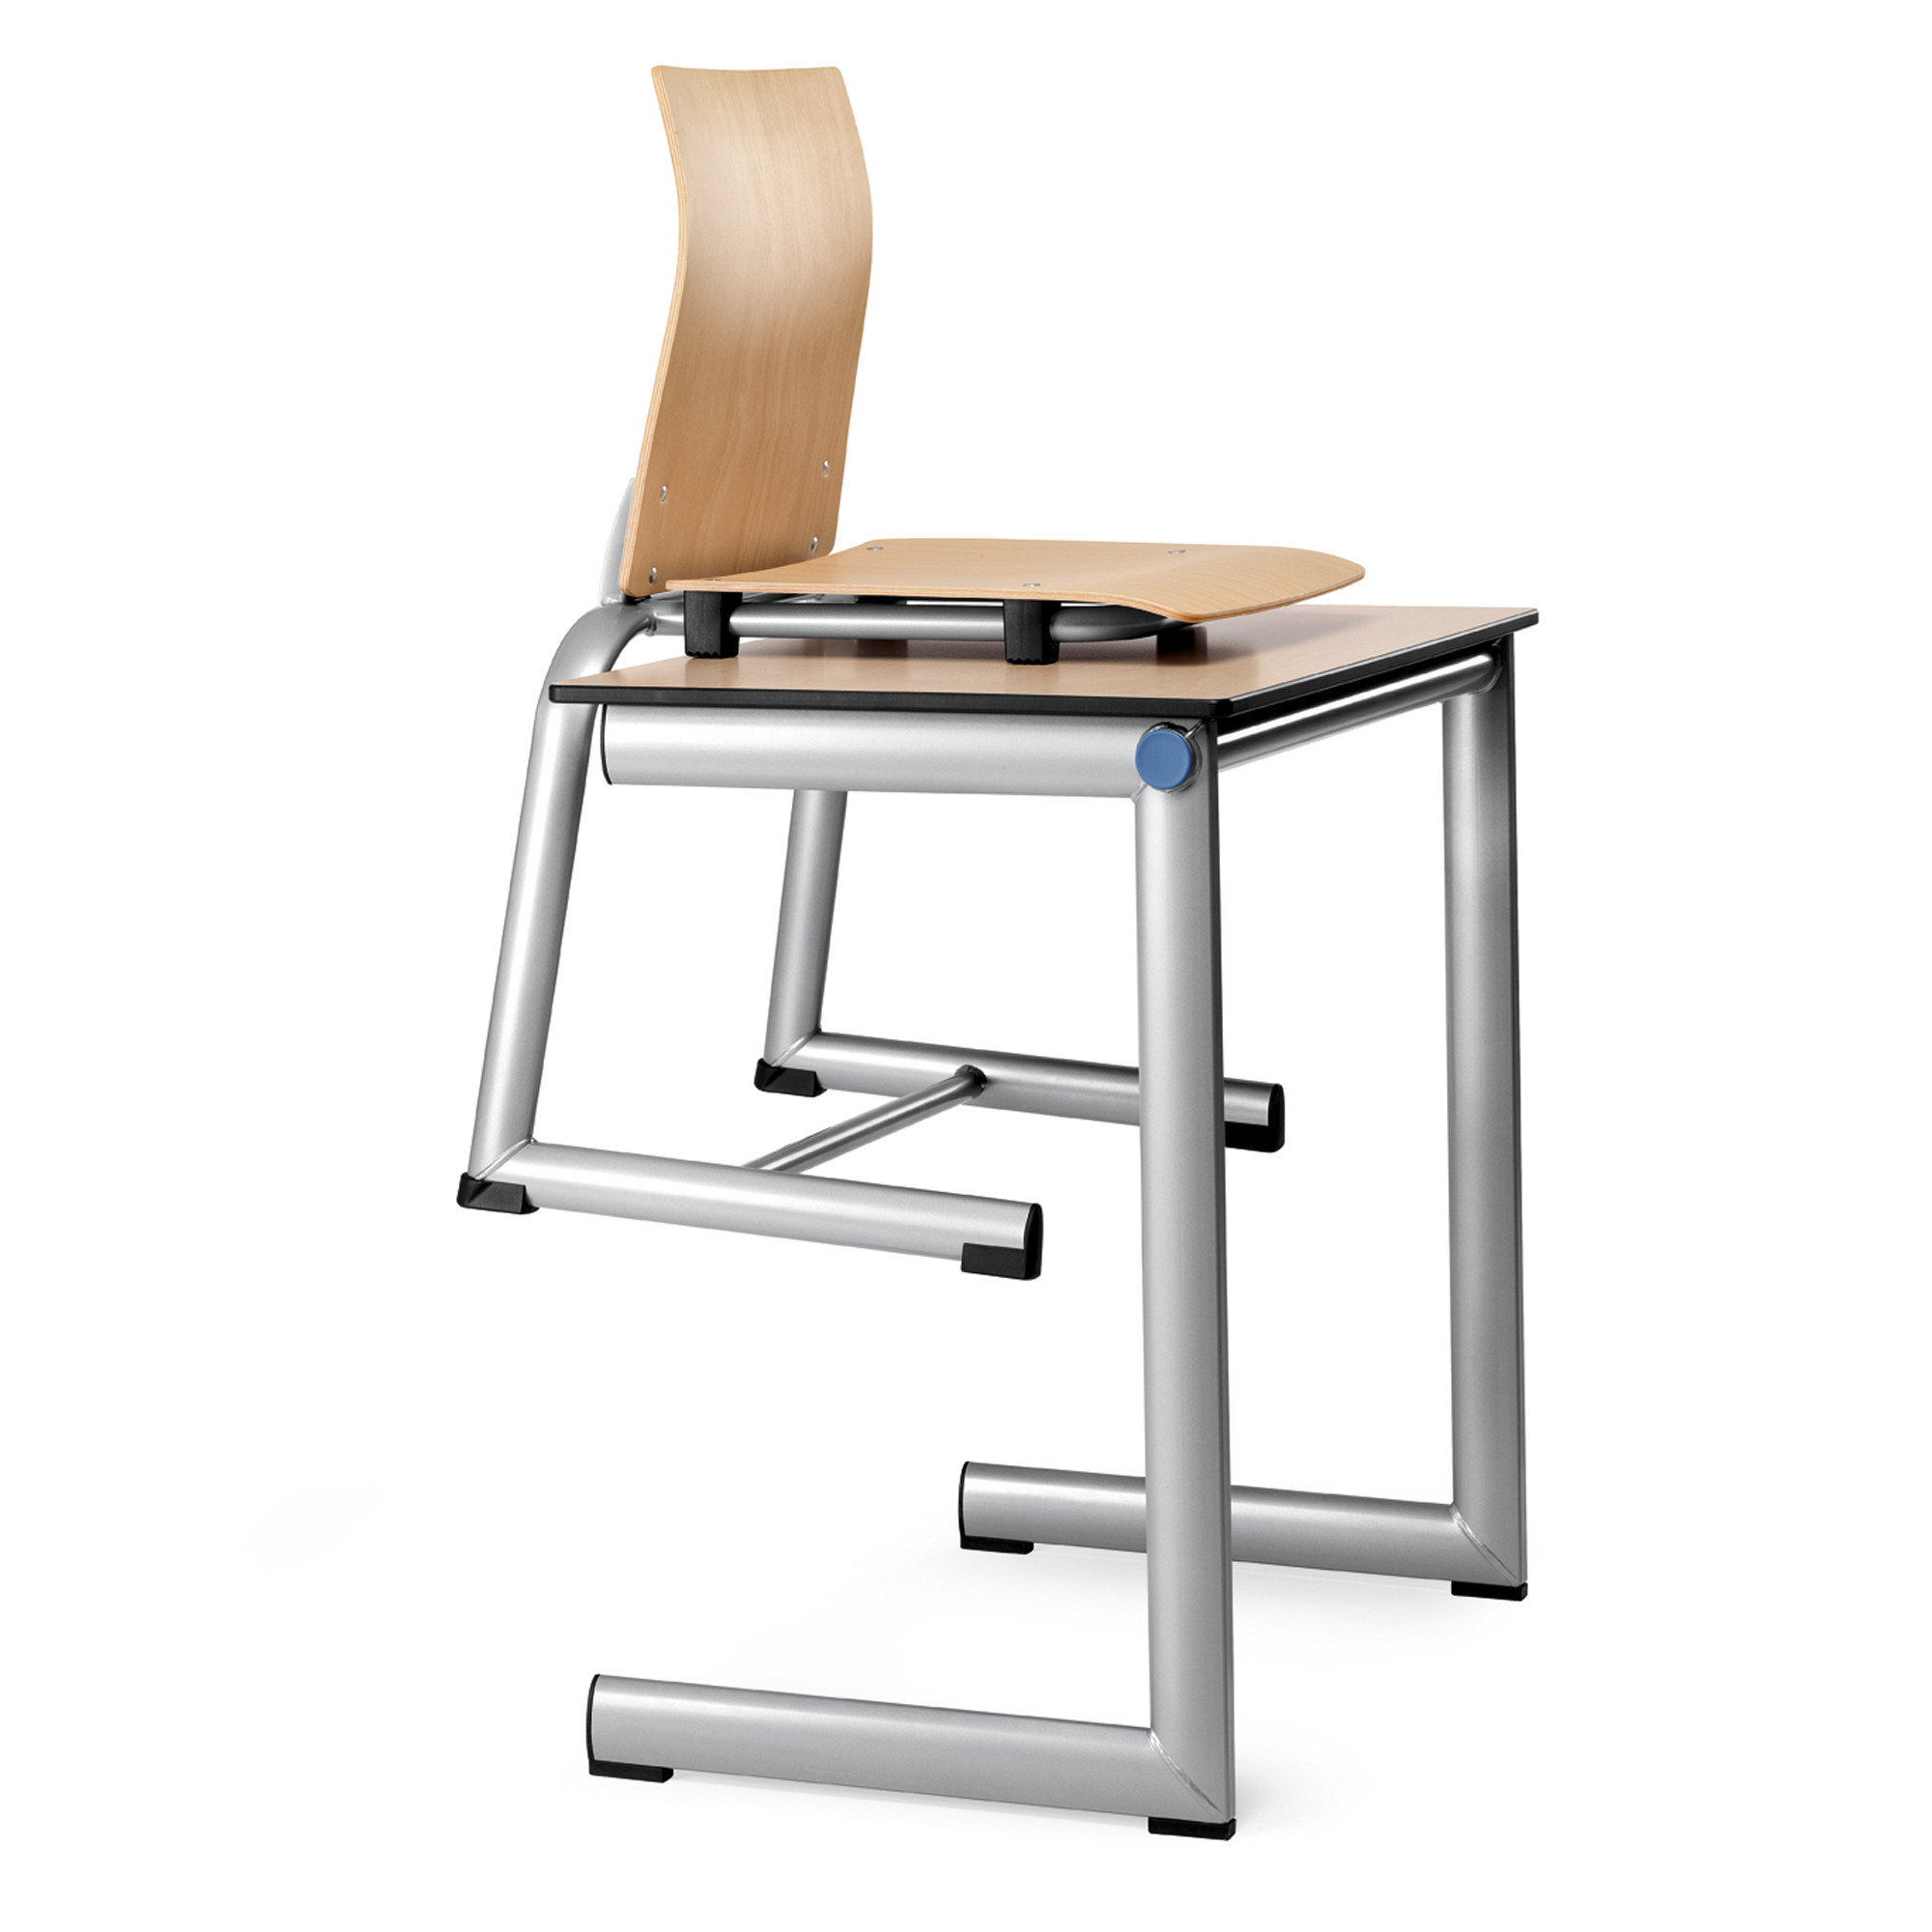 Ahrend 452 School Seating